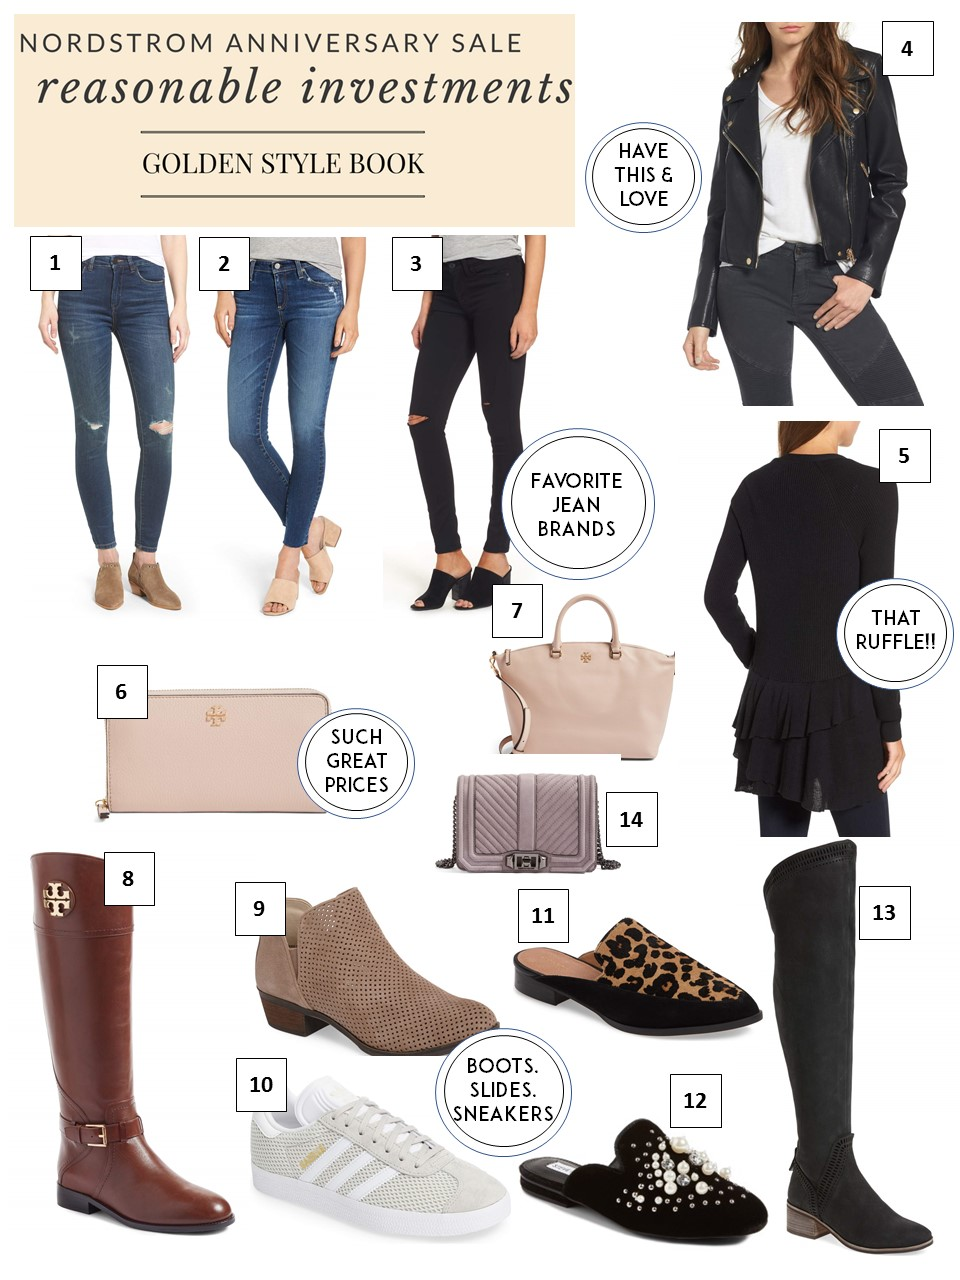 df23bd76c14a ... 6 - Tory Burch Wallet  129.90    7 - Tory Burch Frida Leather Satchel   329.90    8 - Tory Burch Adeline Boot  299.90    9 - BP Faren Perforated  ...